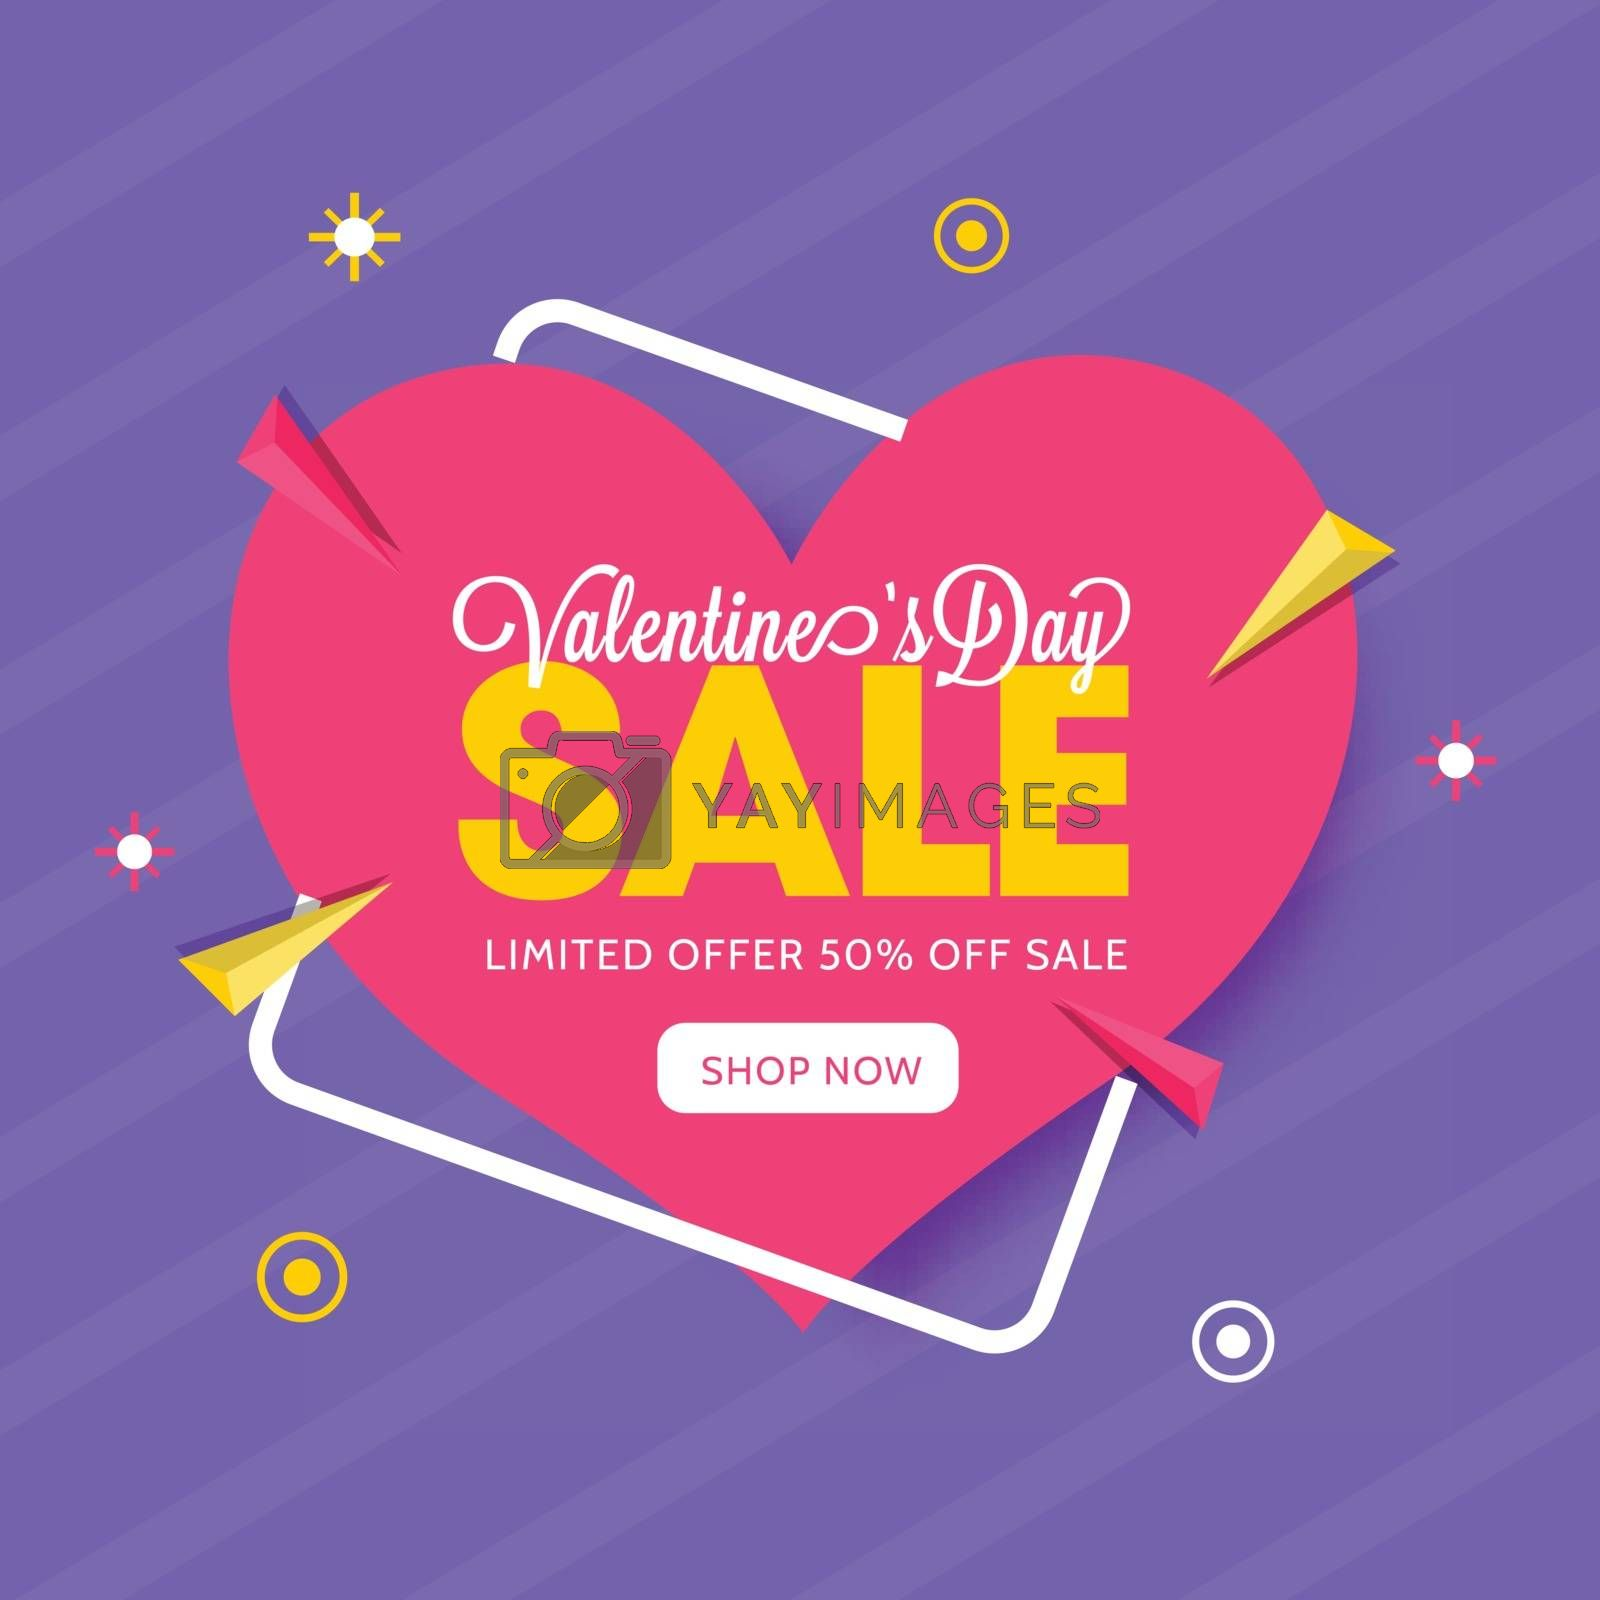 Valentine's Day sale background with paper heart shape. by aispl